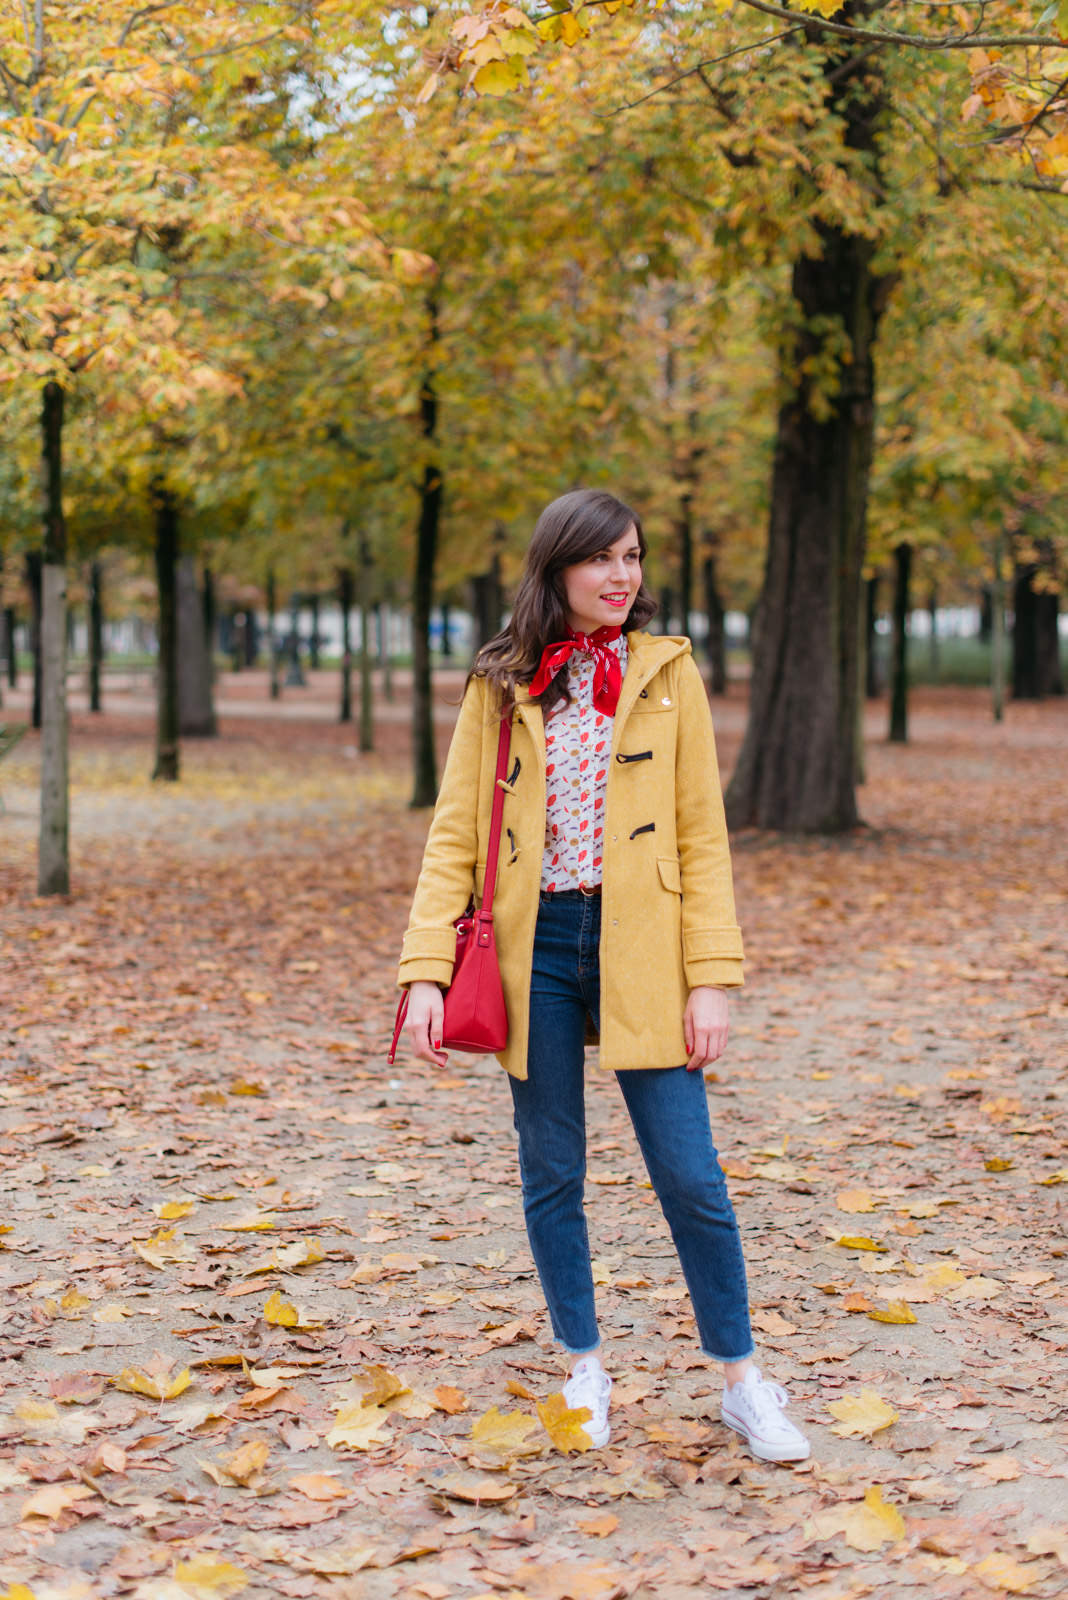 Blog-Mode-And-The-City-Lokks-Fille-de-Automne-9